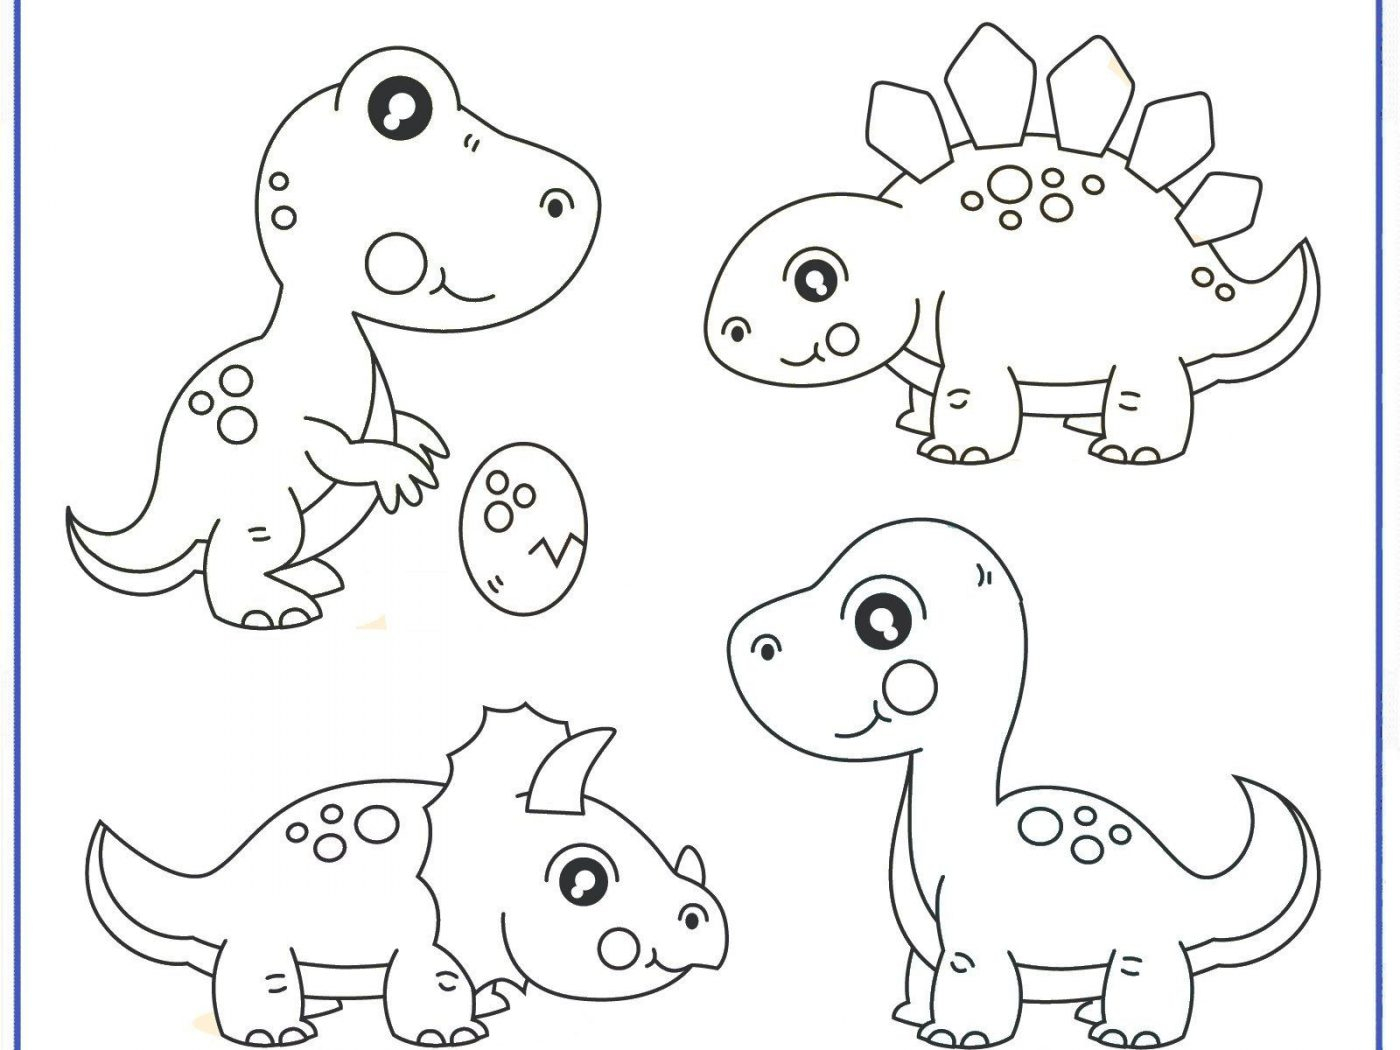 Coloring And Drawing Dinosaurs Coloring Pages For